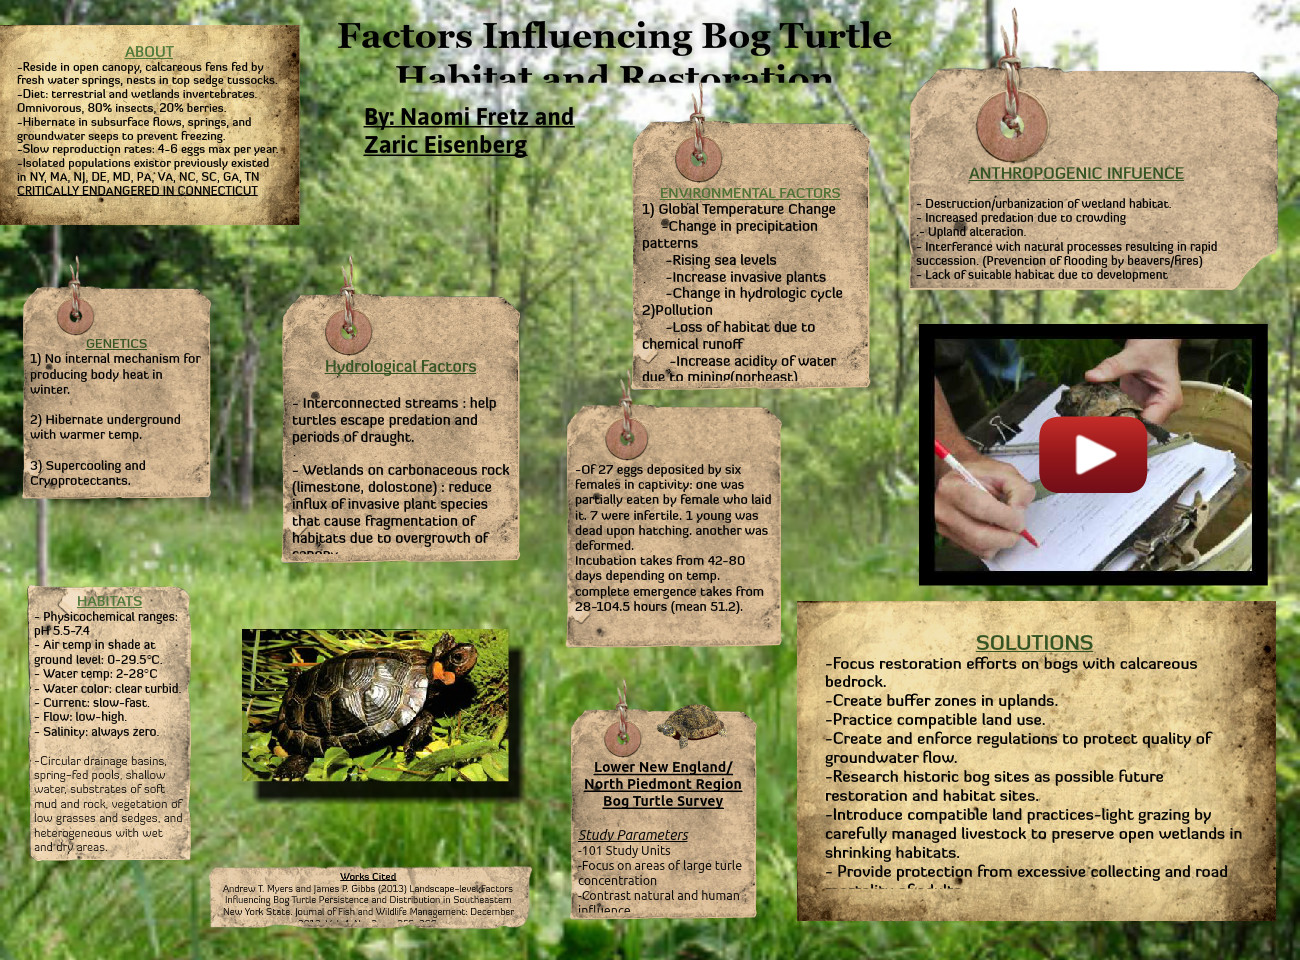 Factors Influencing Bog Turtle